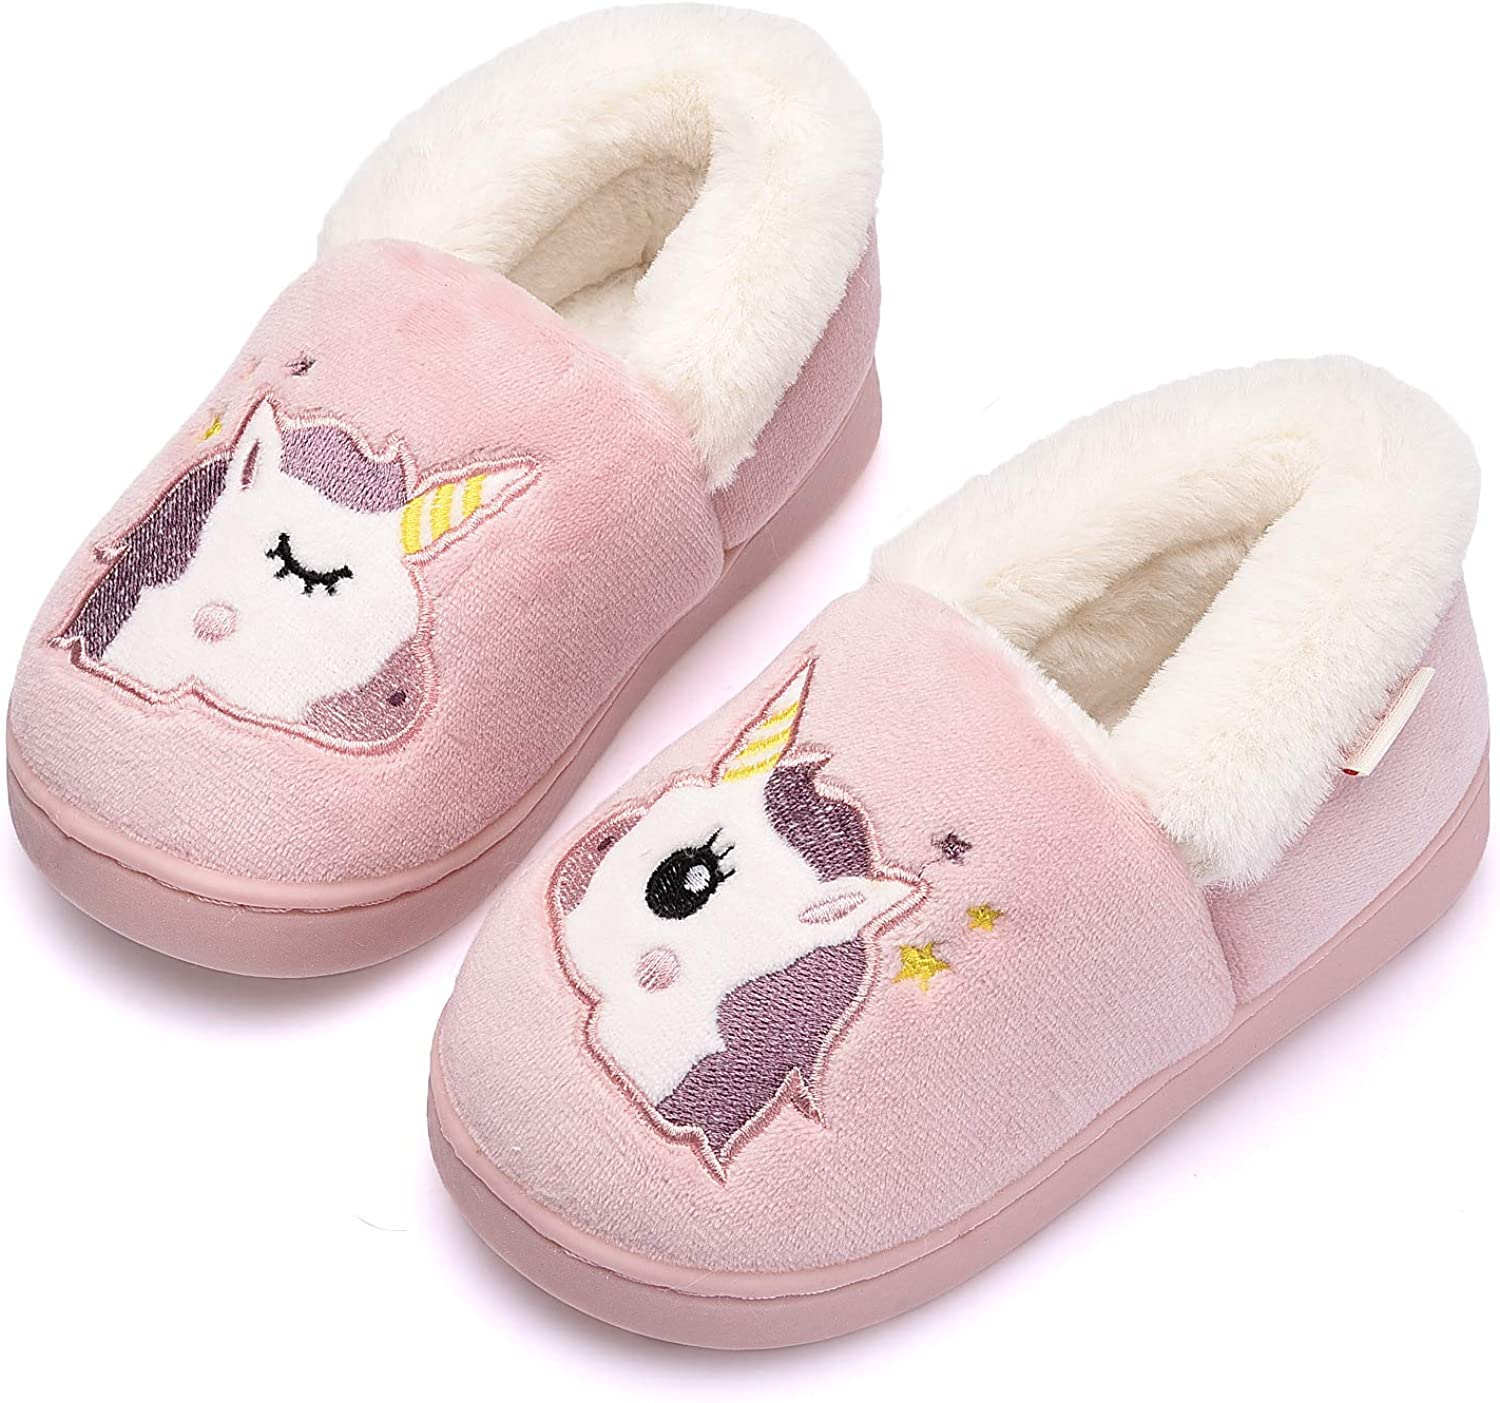 Holynissl Boys Girls Slippers Warm Fur House Slippers for Kids Non Slip Toddler Cute Home Slipper